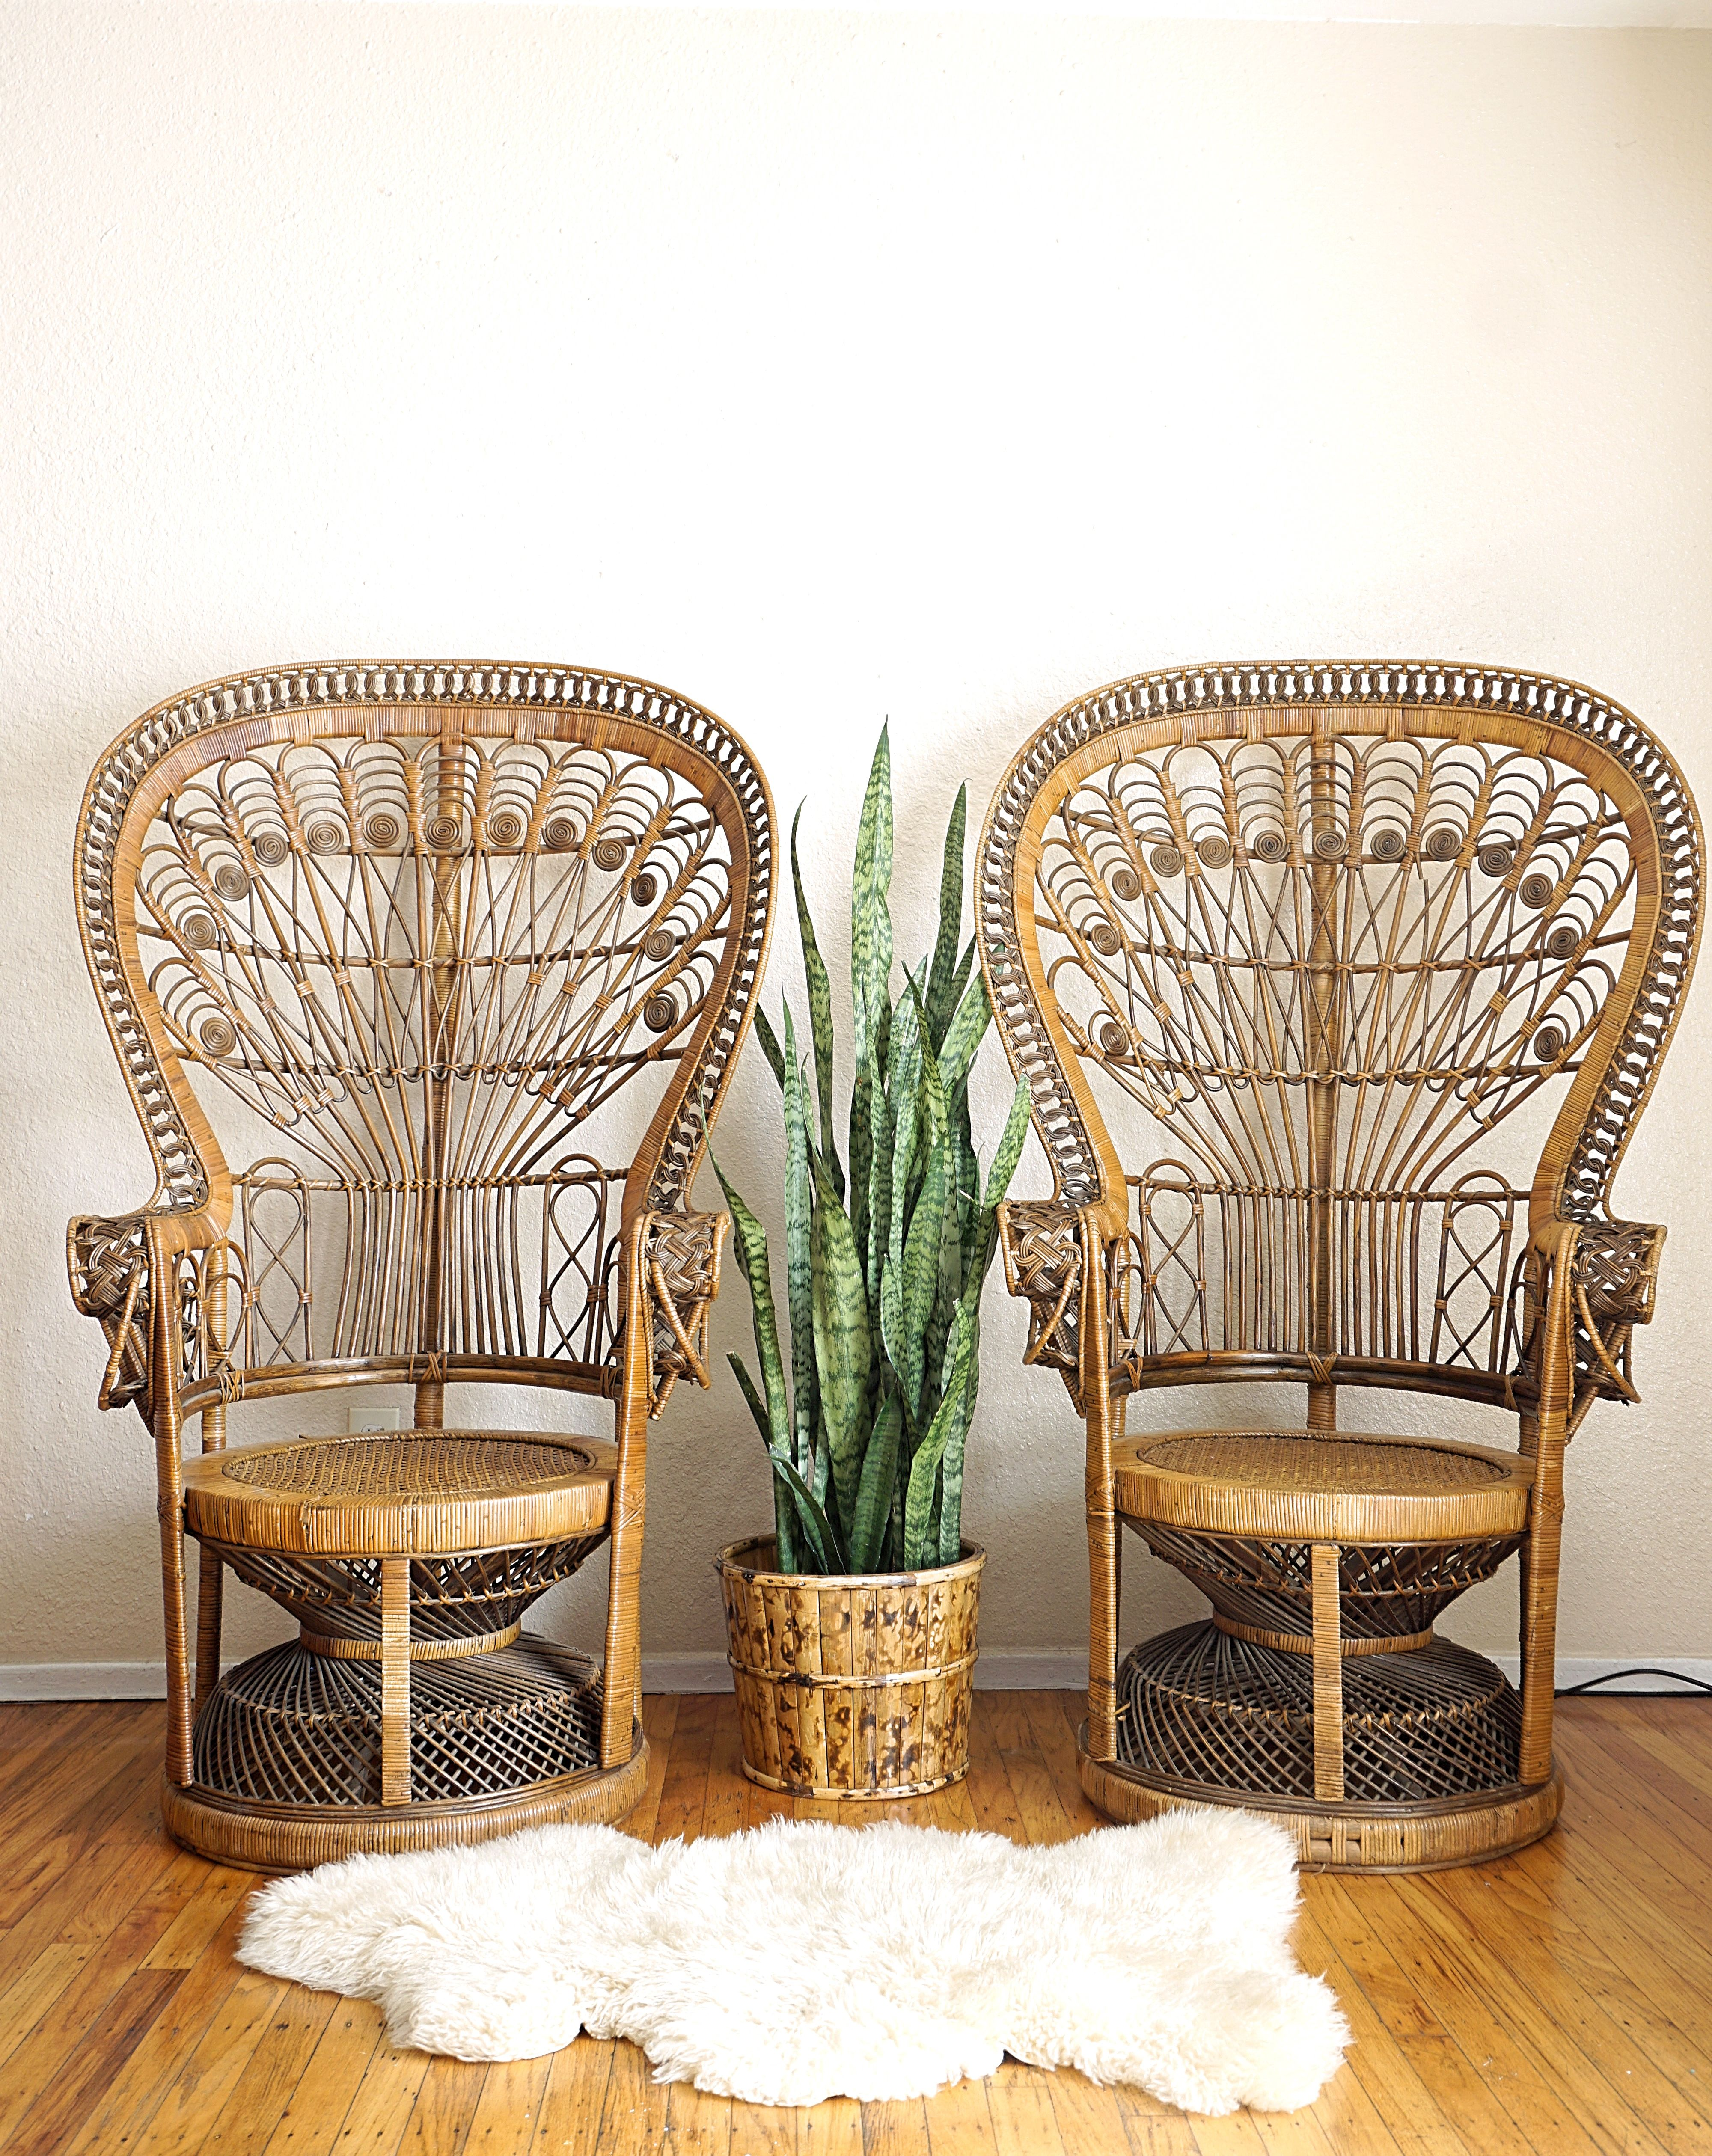 The king queen peacock chairs available for rent in the sacramento valley areas perfect for weddings parties photoshoots